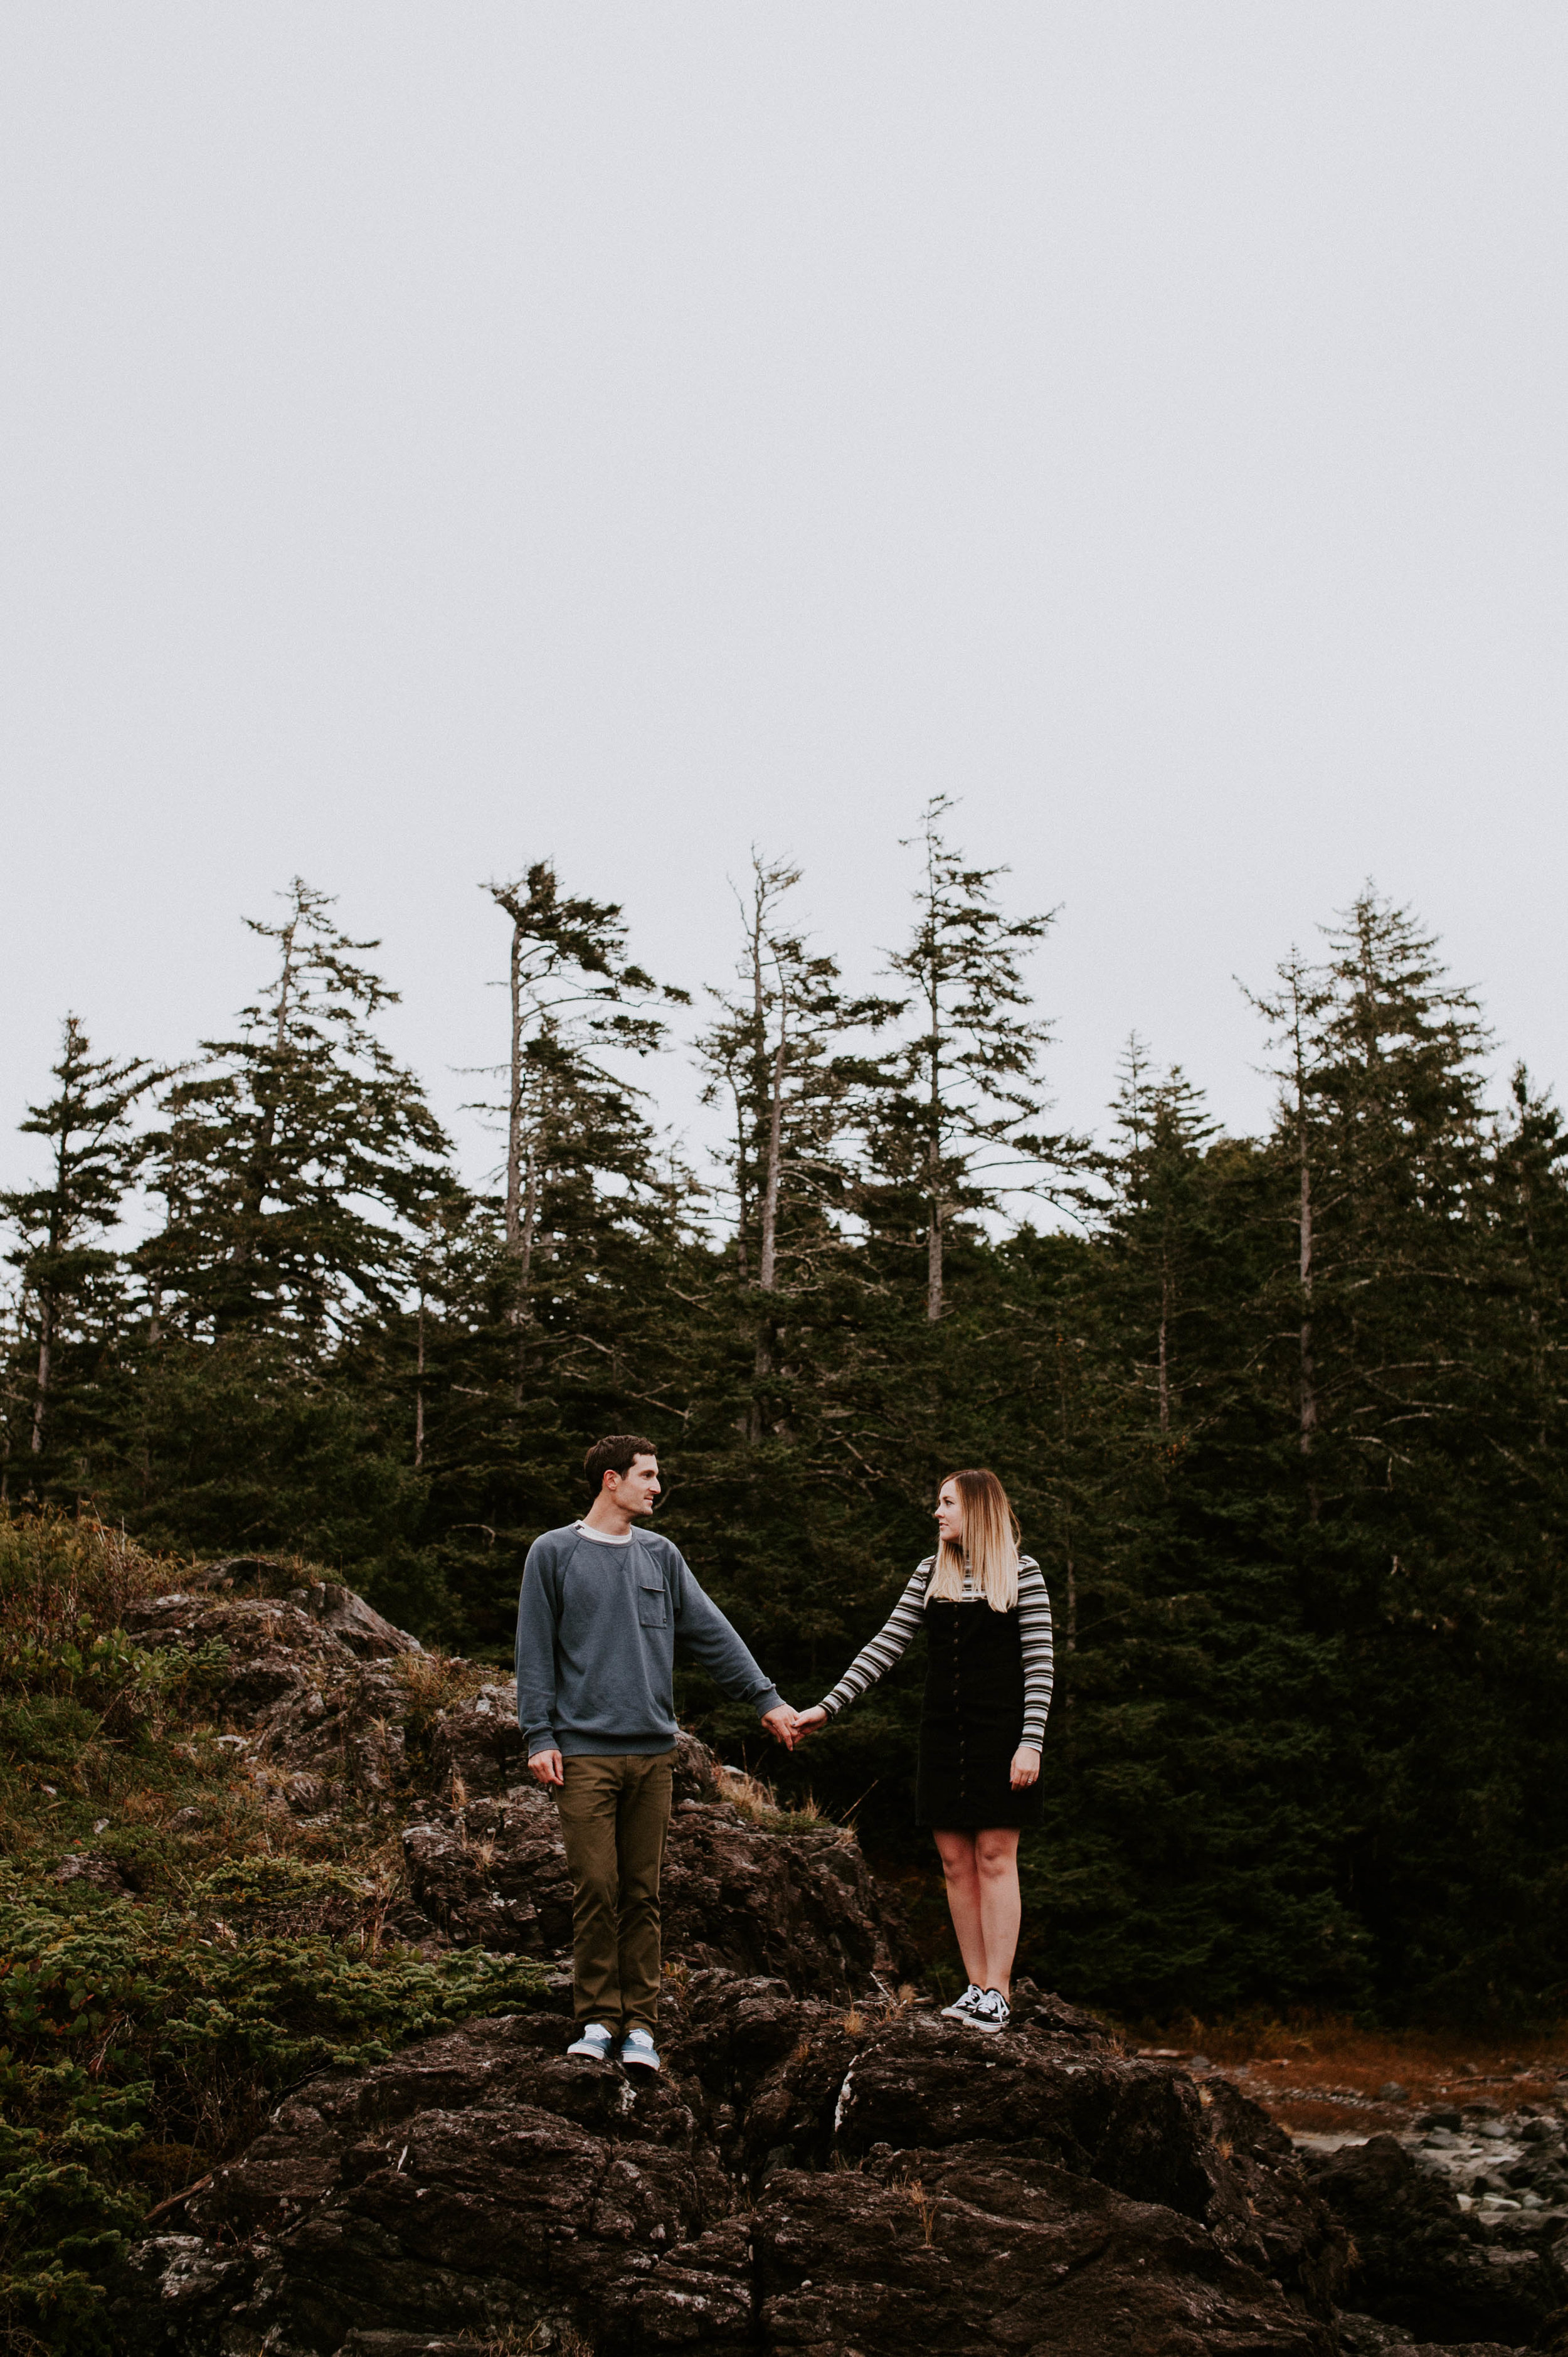 KRISTEN & GAVIN - PACIFIC RIM NATIONAL PARK, NOVEMBER 2018Our session with Nora was such a dream! I found her photography through social media, and knew right away that I had to reach out to her about an upcoming Tofino trip we had planned.Before our shoot, Nora really spent time getting to know us and this made our meeting that much more exciting! The first thing I noticed, and was incredibly thankful for, was how talented she was at giving us direction. We had many playful games that captured our truly genuine moments!It was an unforgettable experience and we would highly recommend Nora to anyone! Trust us, if you're looking for a photographer who will exceed all of your expectations, then you've found her! You're a true gem, Nora - we can't wait to work with you again!